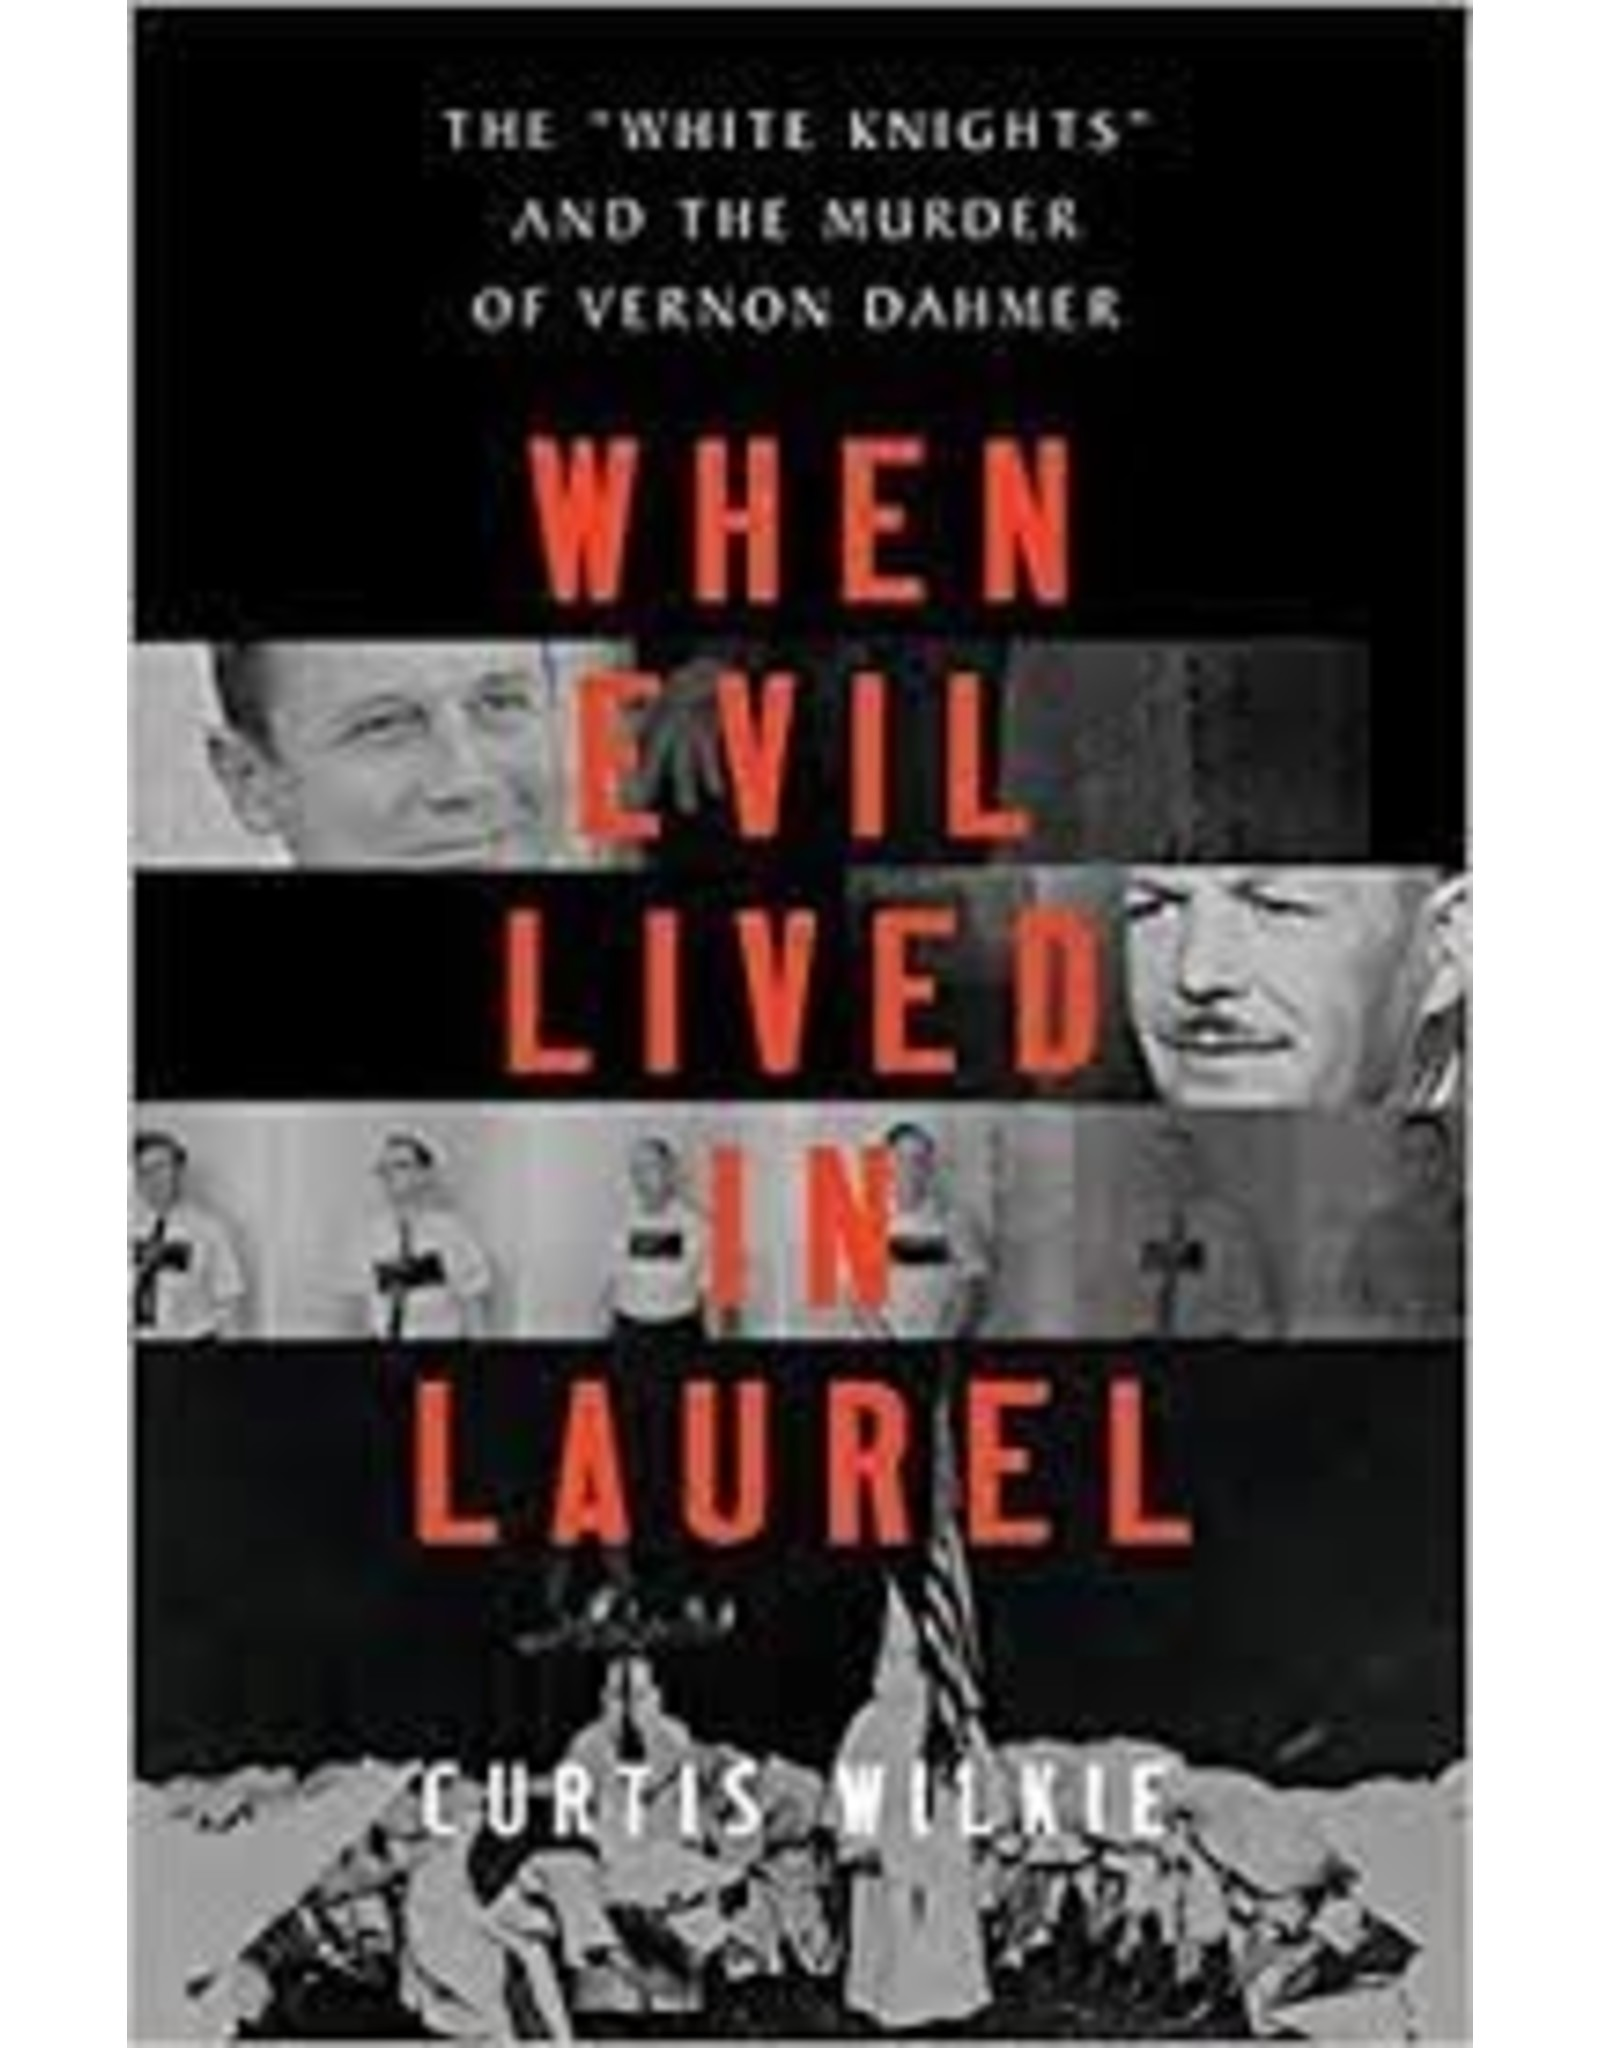 """Books When Evil Lived in Laurel: The """" White Knights and the Murder of Vernon Dahmer by Curtis Wilkie"""